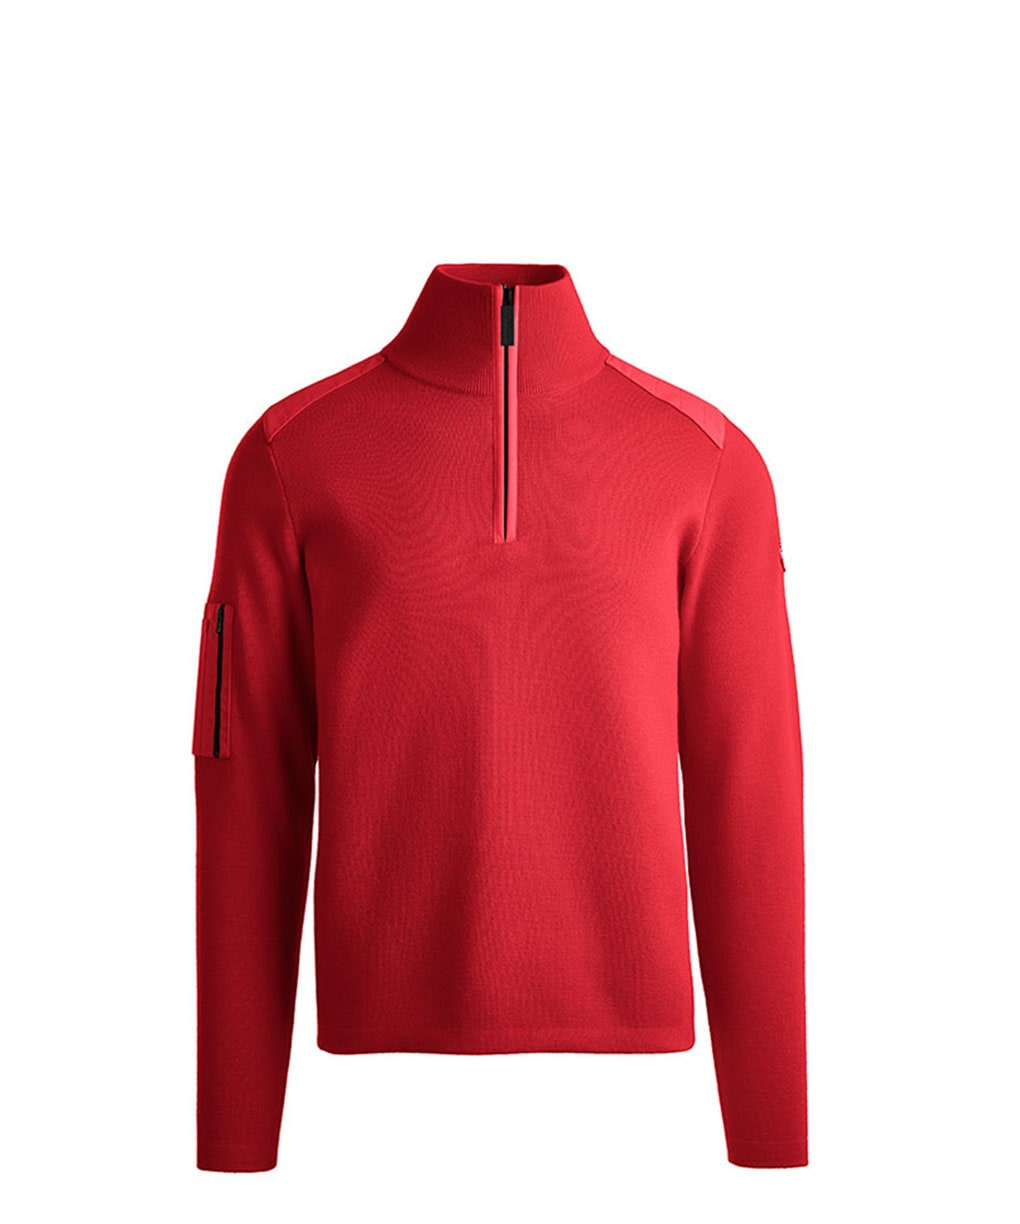 STORMONT 1/4 ZIP SWEATER